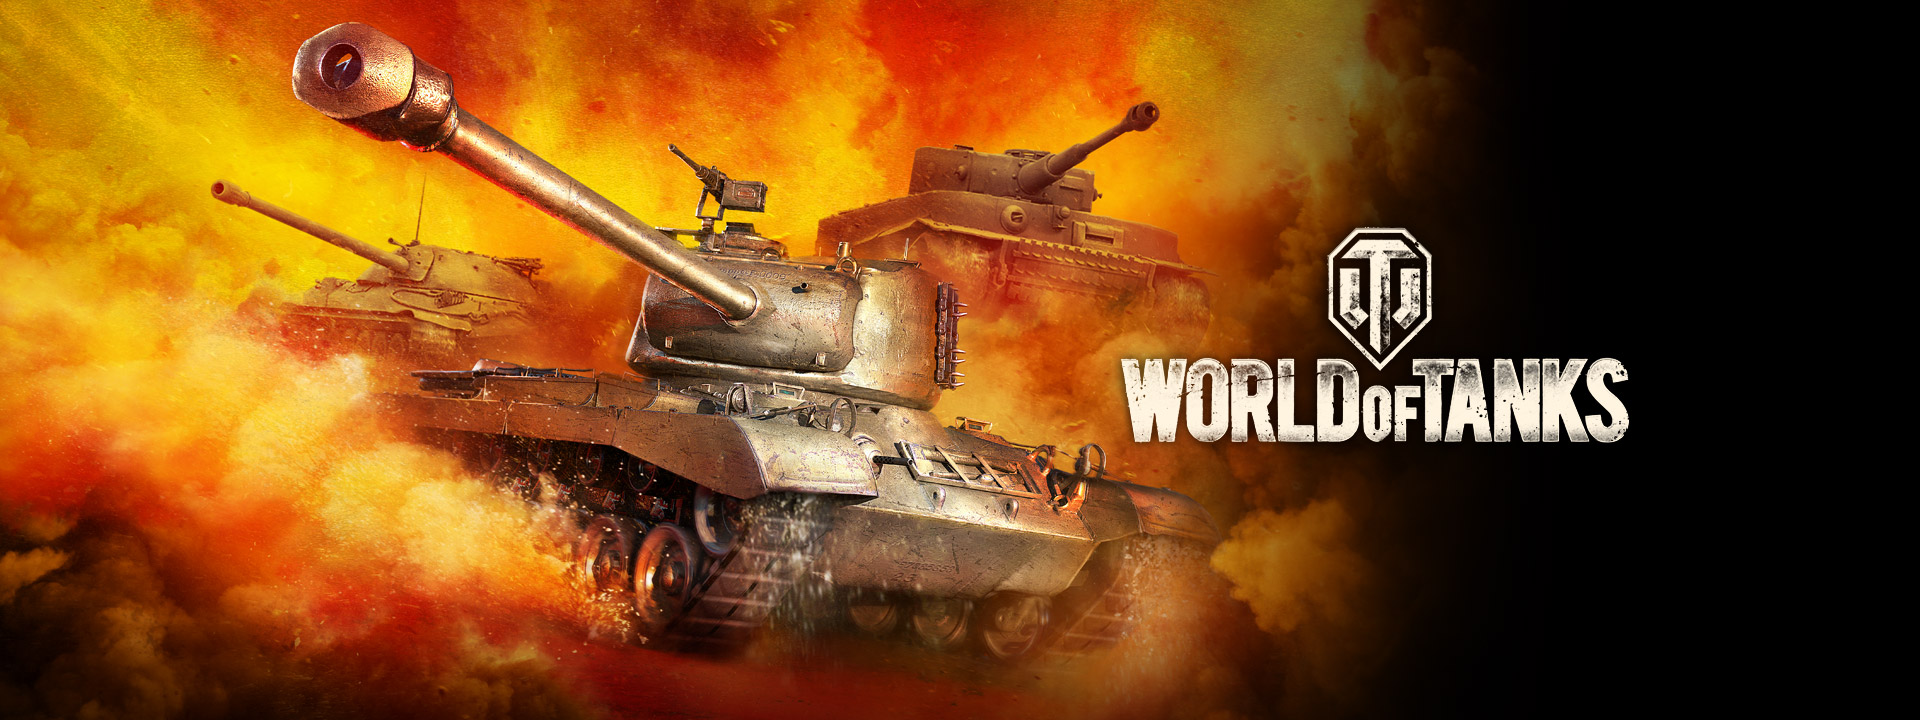 World of Tanks on Xbox One